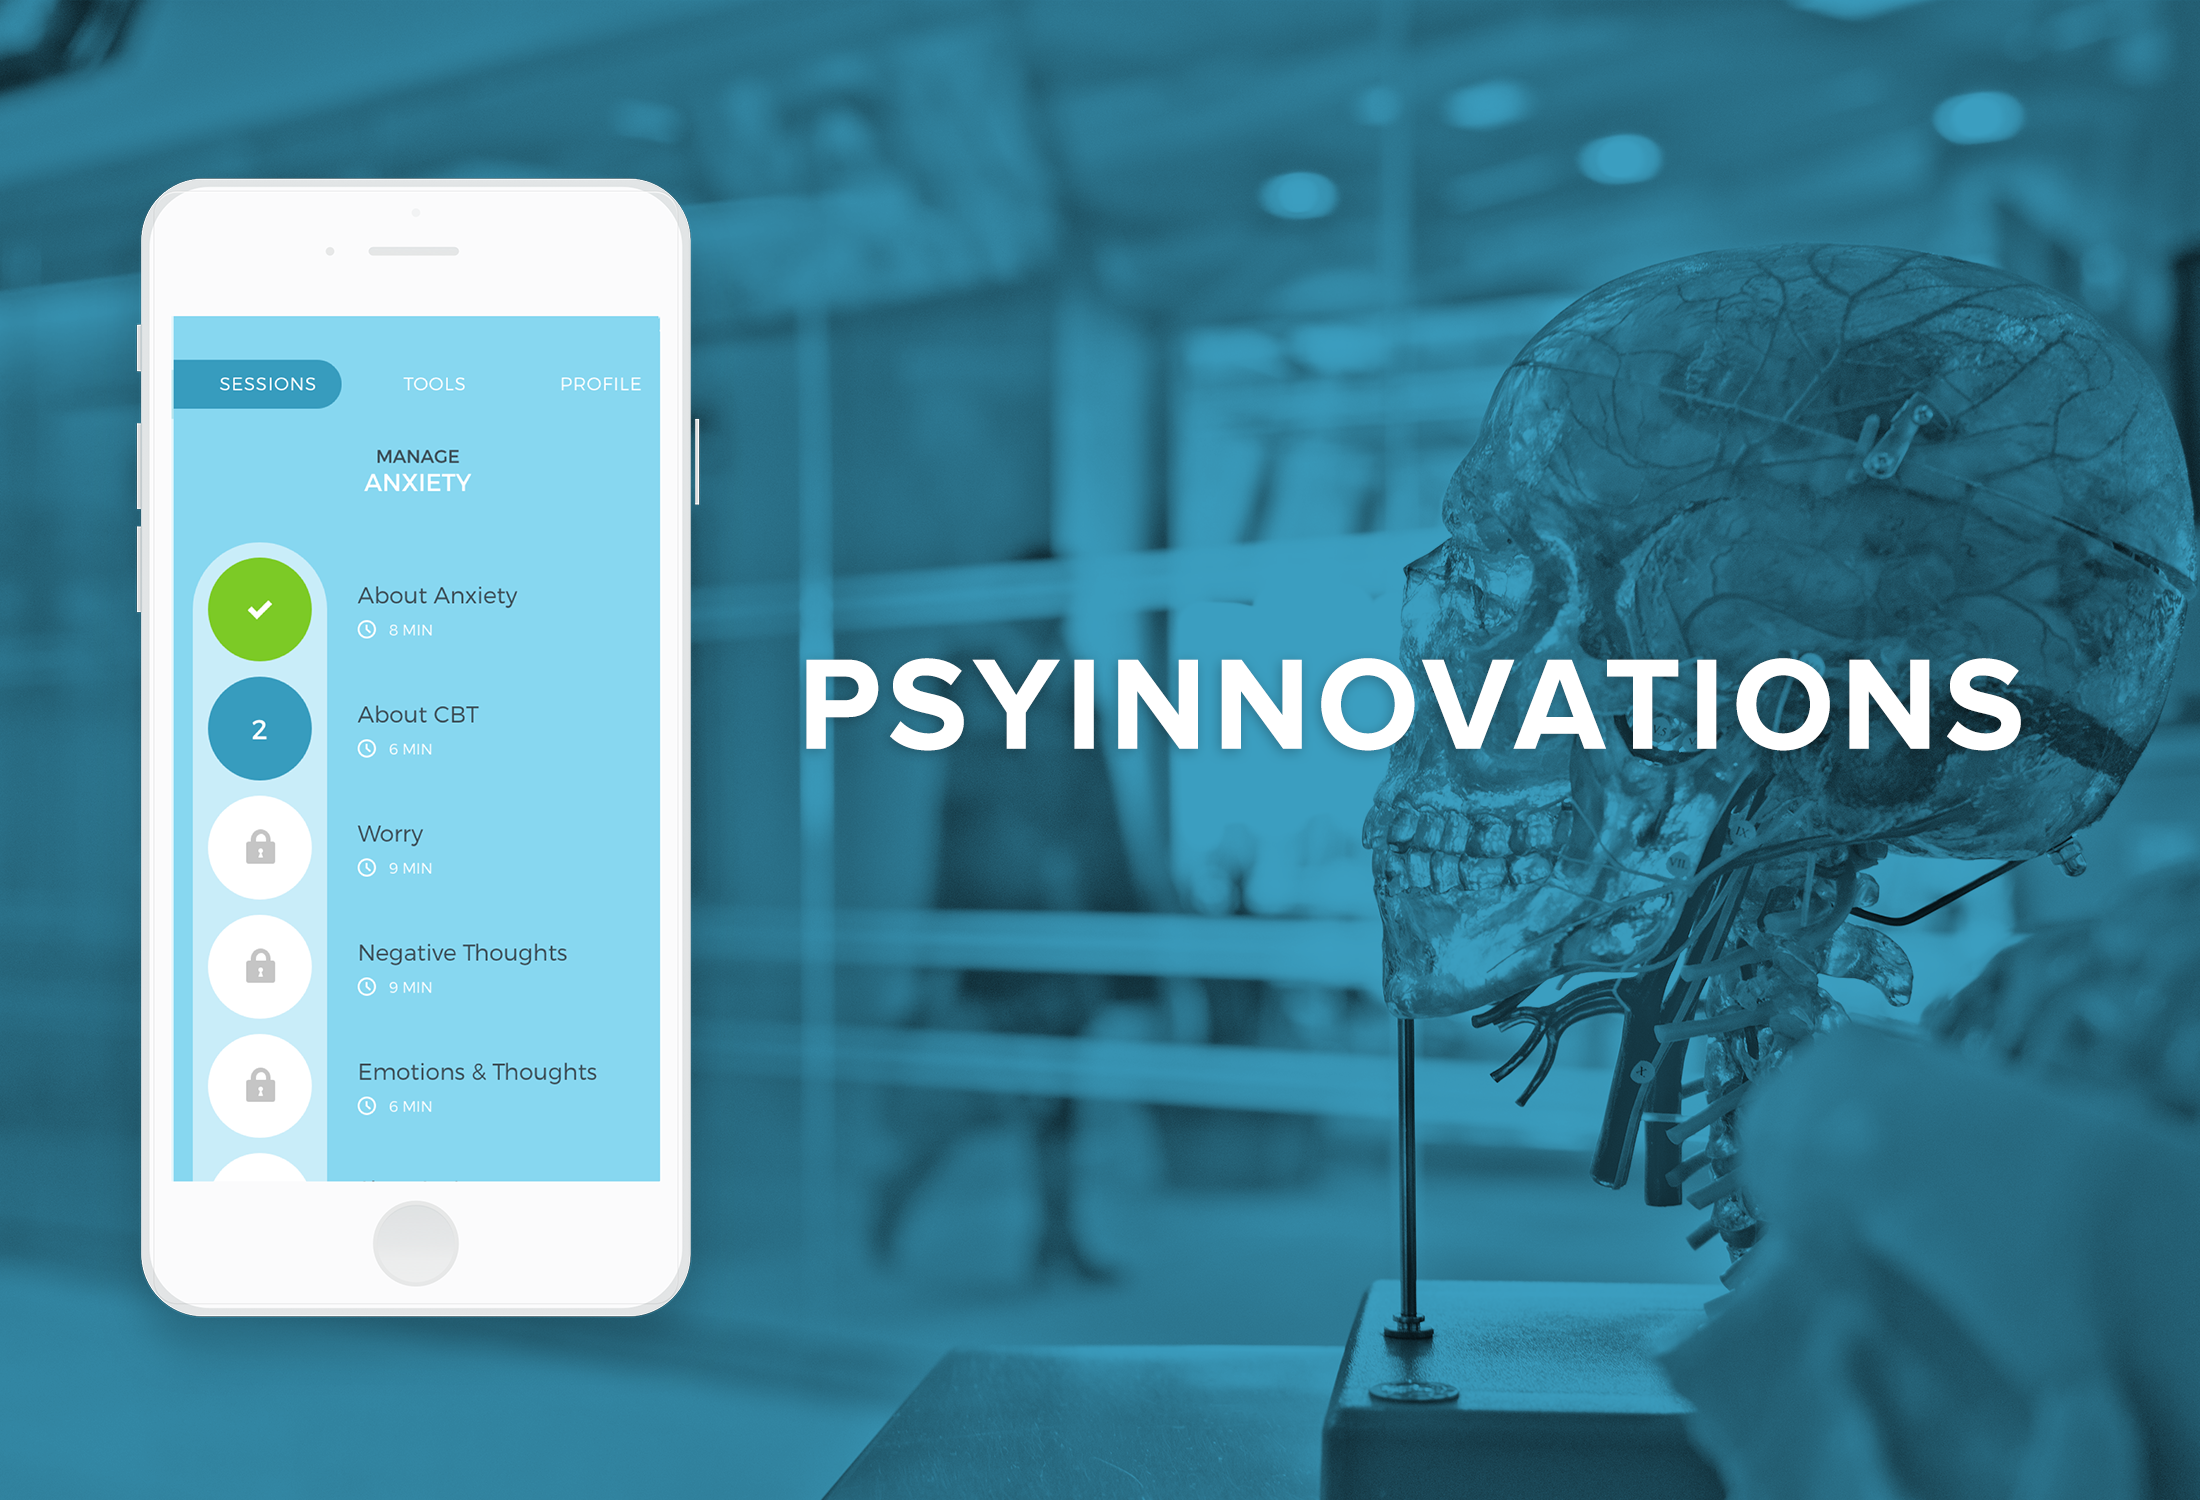 PsyInnovations   The UX of treating anxiety on-the-go  User Research, Information Architecture, Interaction design